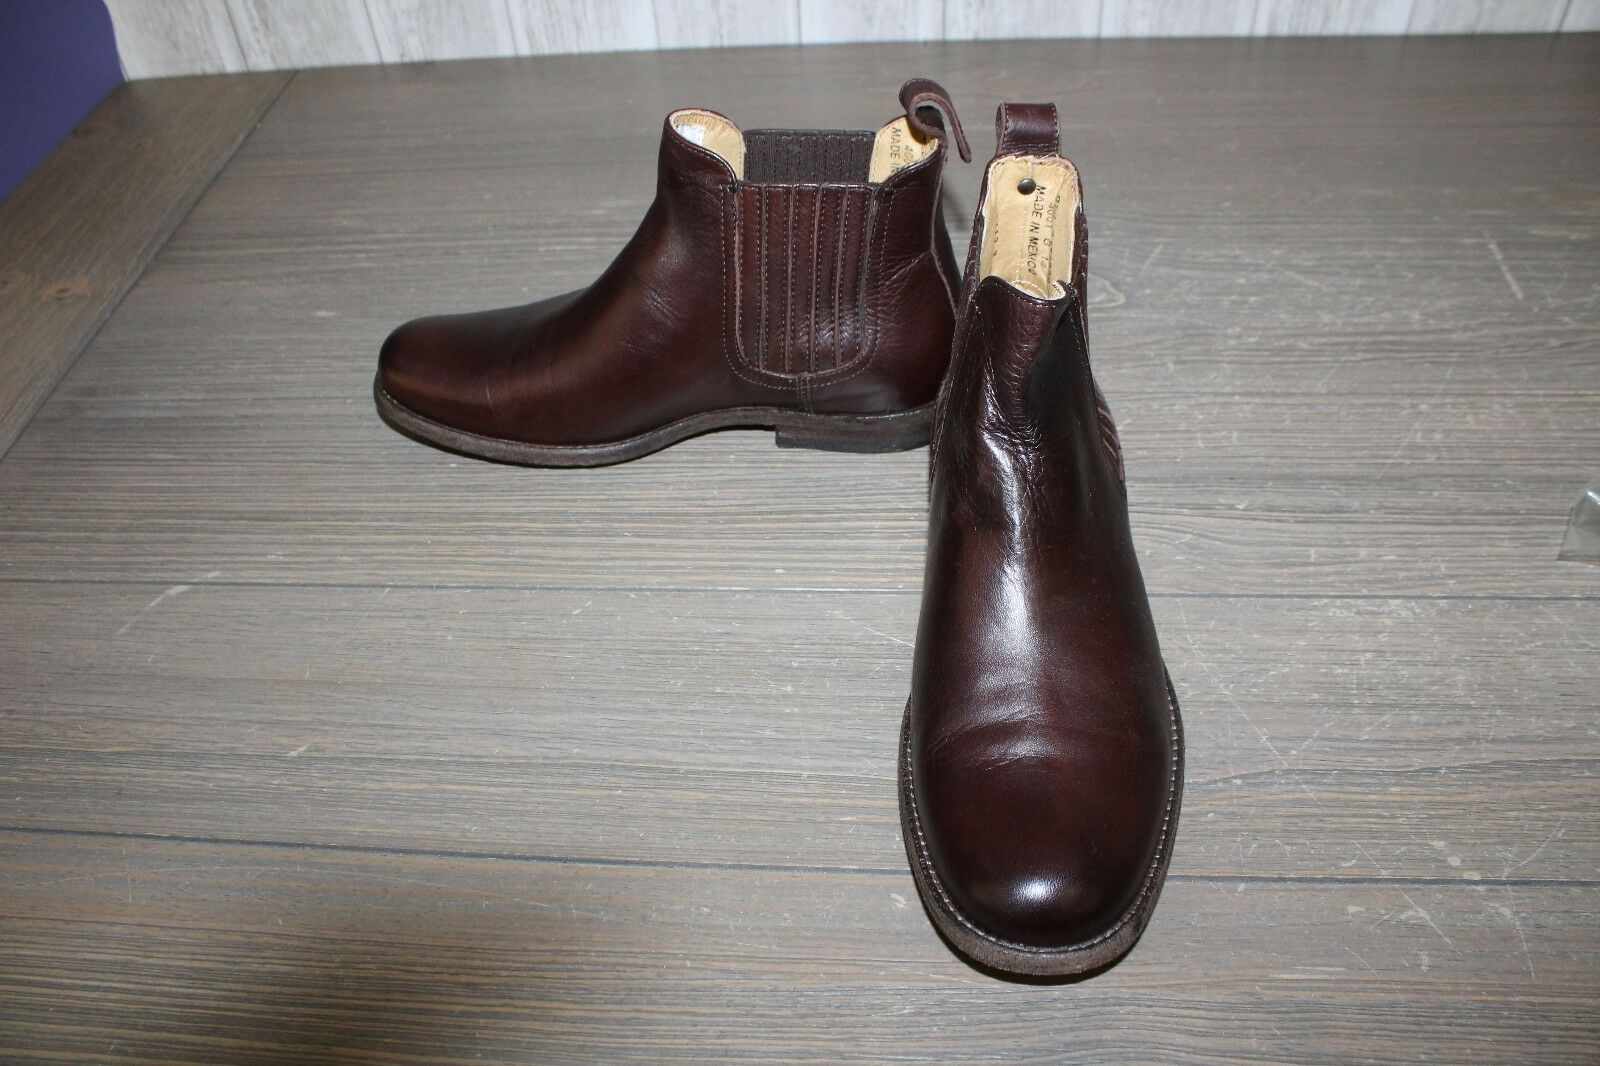 Frye 'Phillip' Chelsea Boot - Men's Size 9.5 B, Brown (DAMAGED)